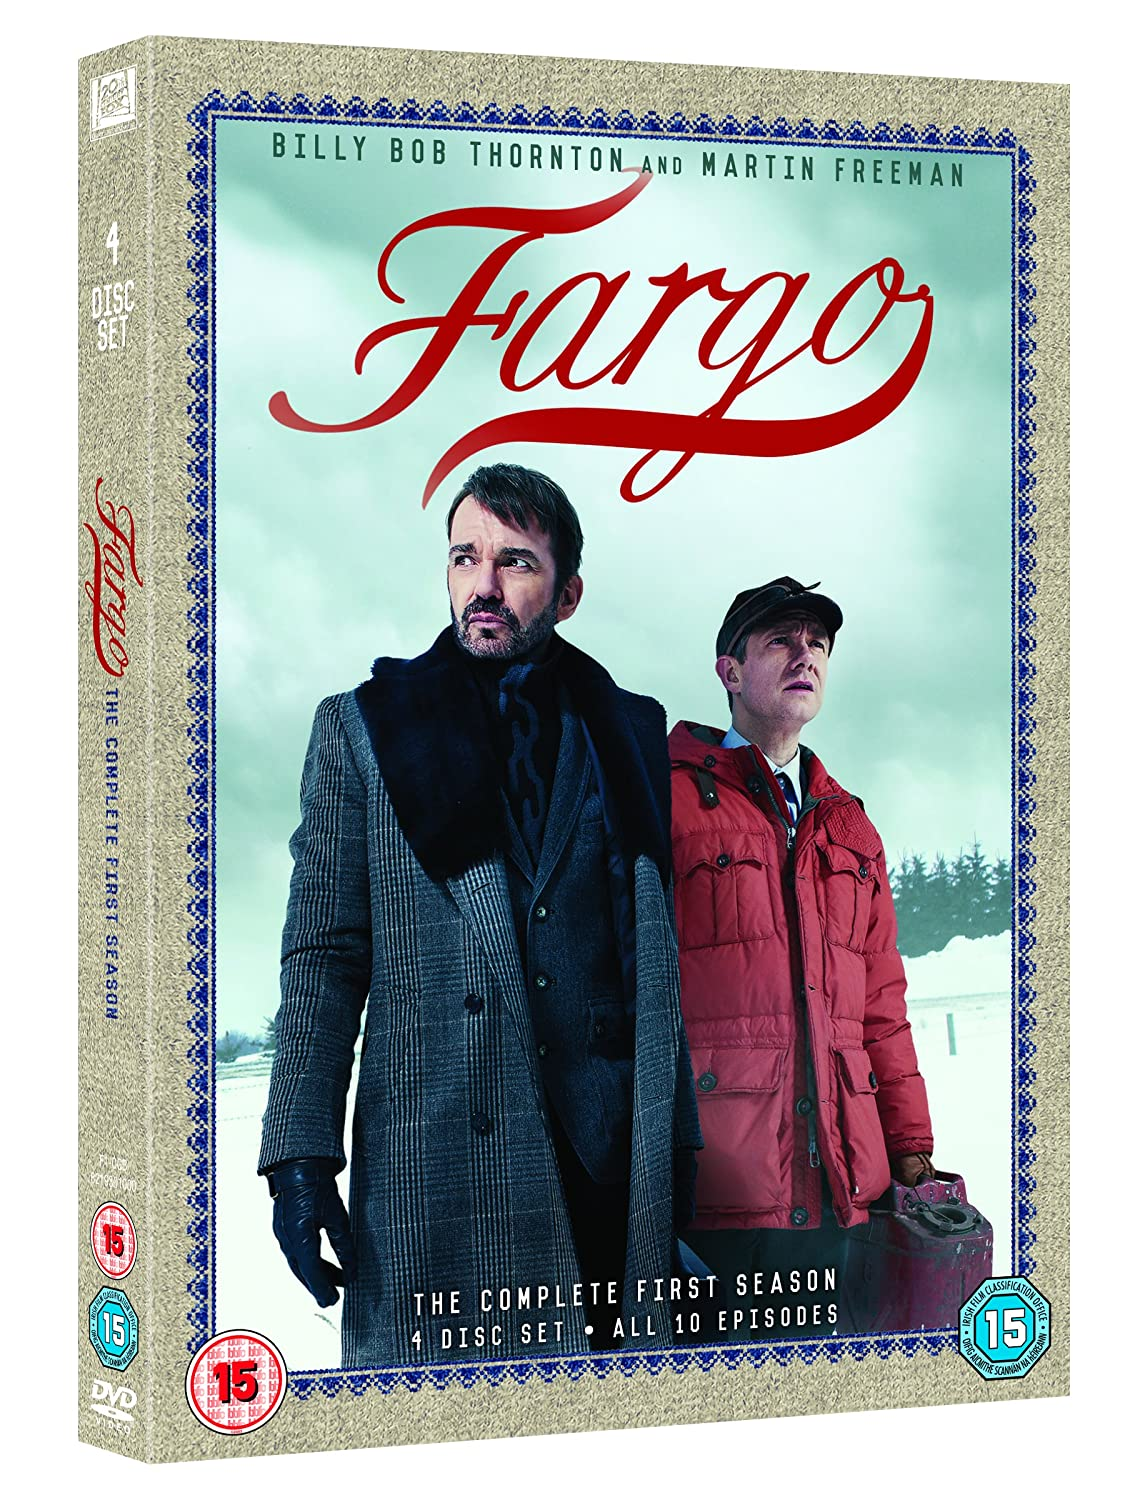 He will also become a partner in 'Fargo' showrunner Noah Hawley's ...